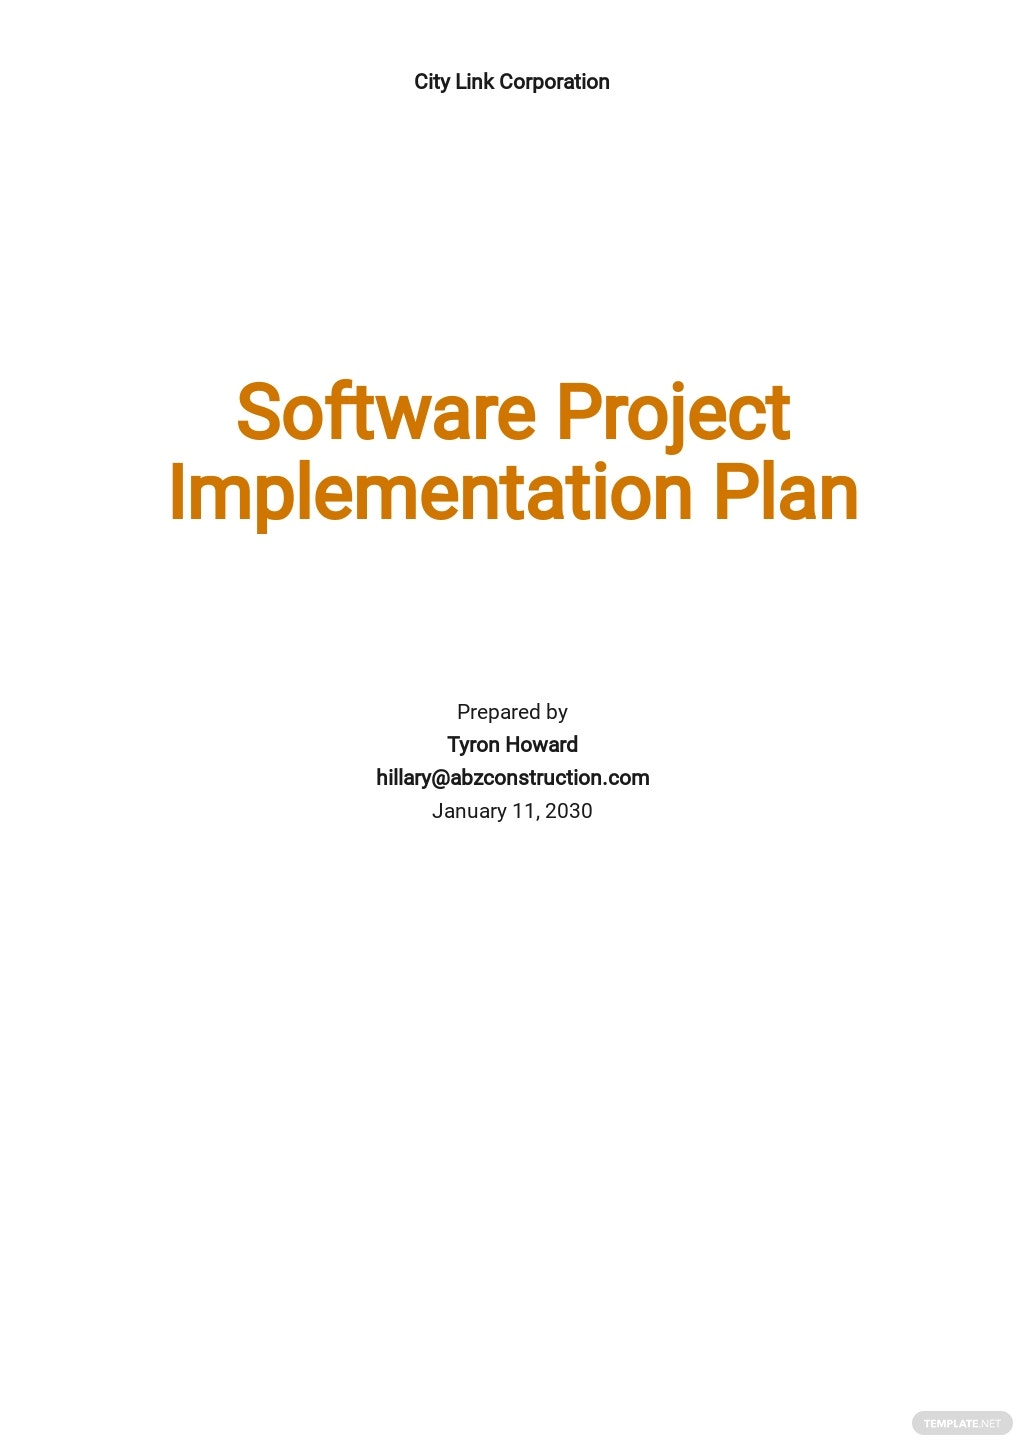 Software Project Implementation Plan Template